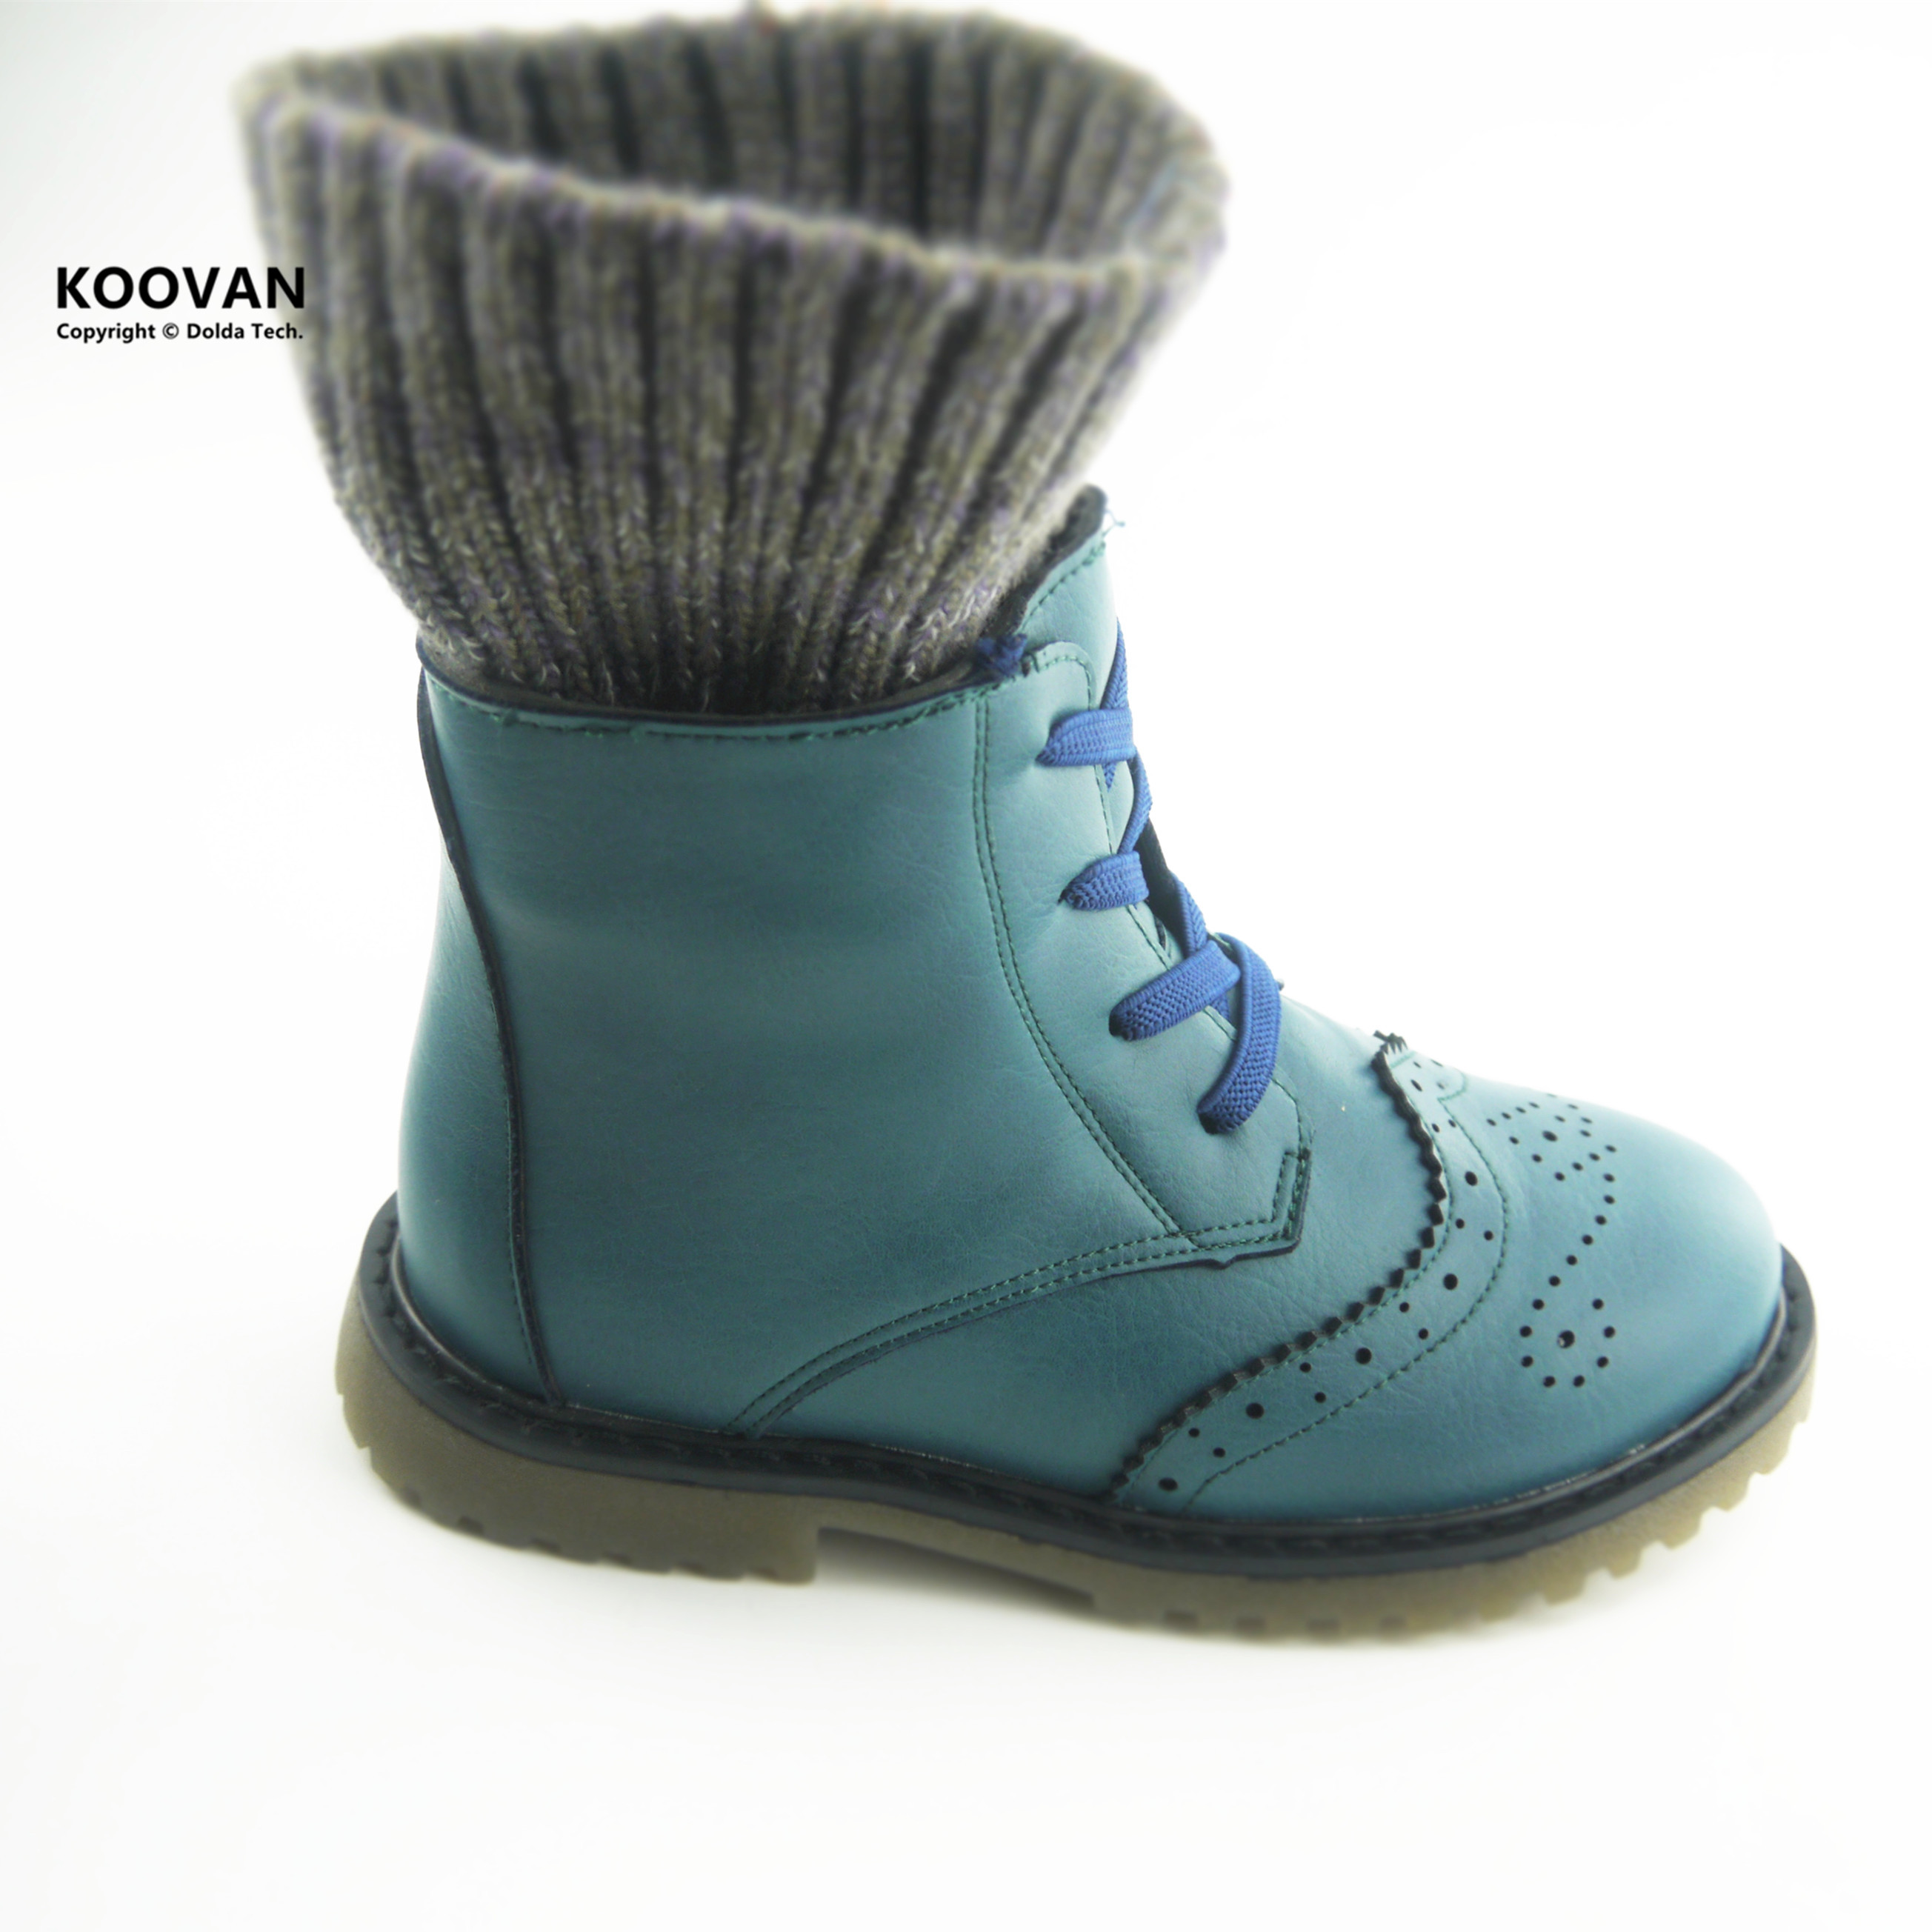 Koovan 2017 New Winter Fashion Kids Shoes Children's Warm Boot Boys Girls Shoes Boots Wool Flanging Martin Cotton Padded Shoes